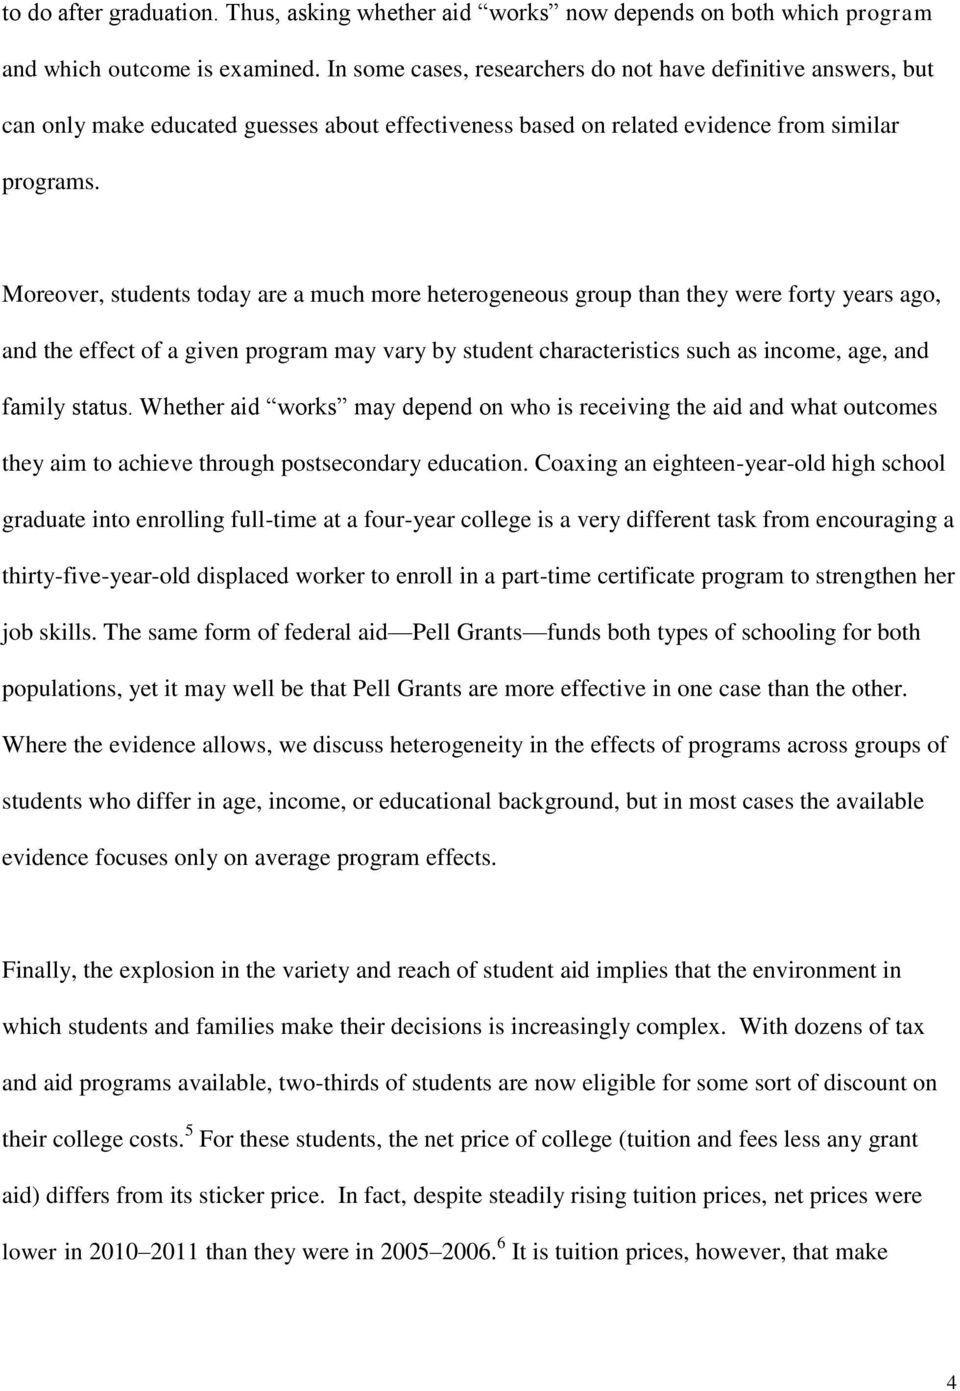 Moreover, students today are a much more heterogeneous group than they were forty years ago, and the effect of a given program may vary by student characteristics such as income, age, and family